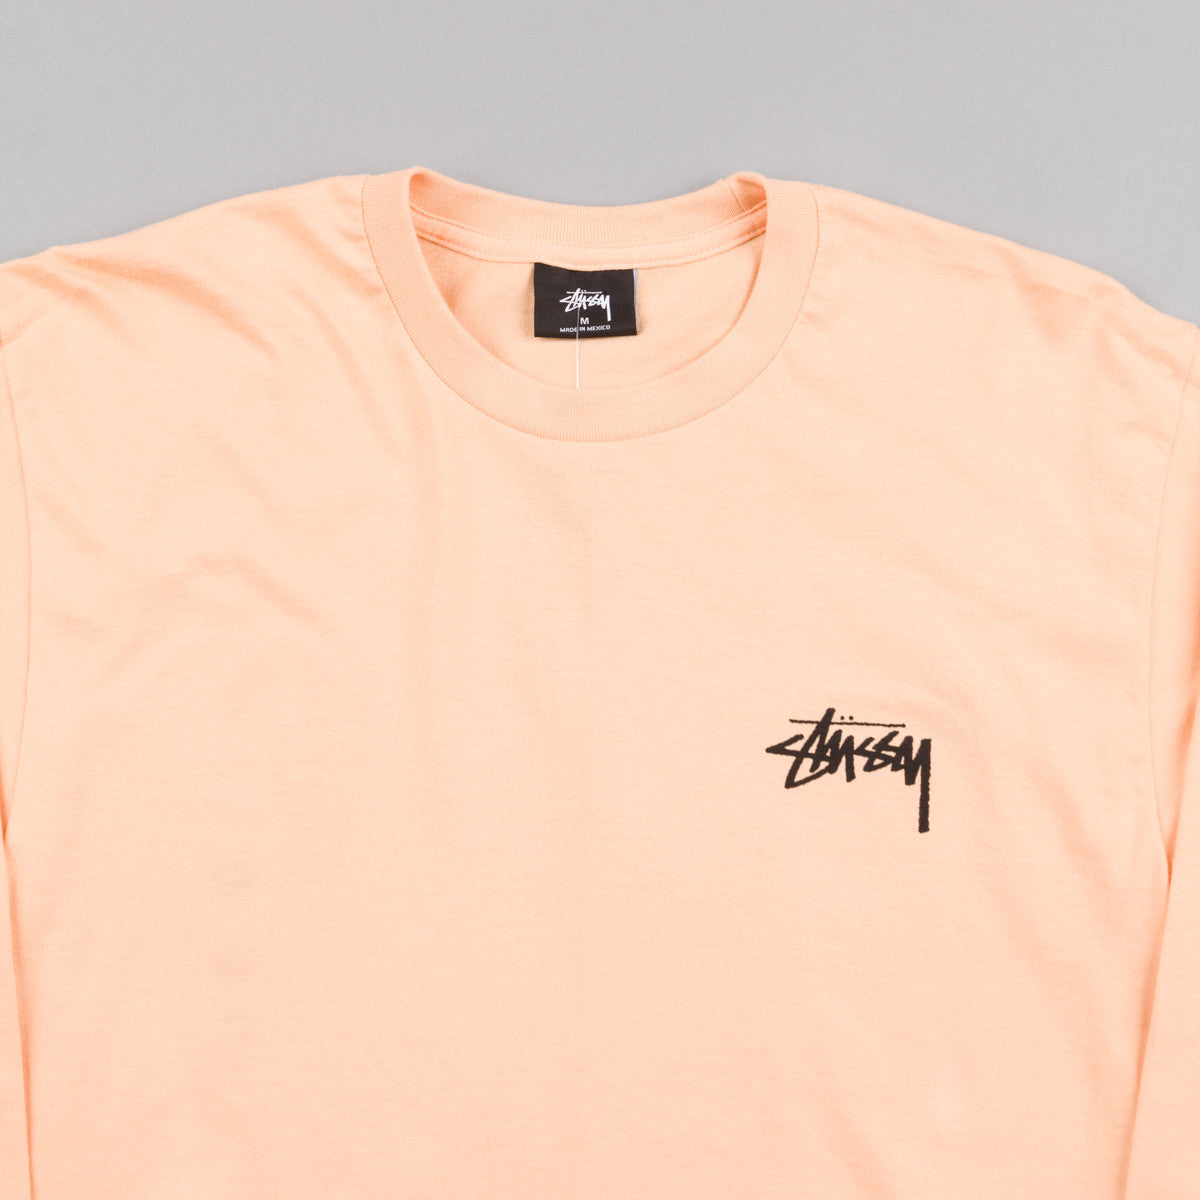 Stussy Original Stock Long Sleeve T-Shirt - Peach